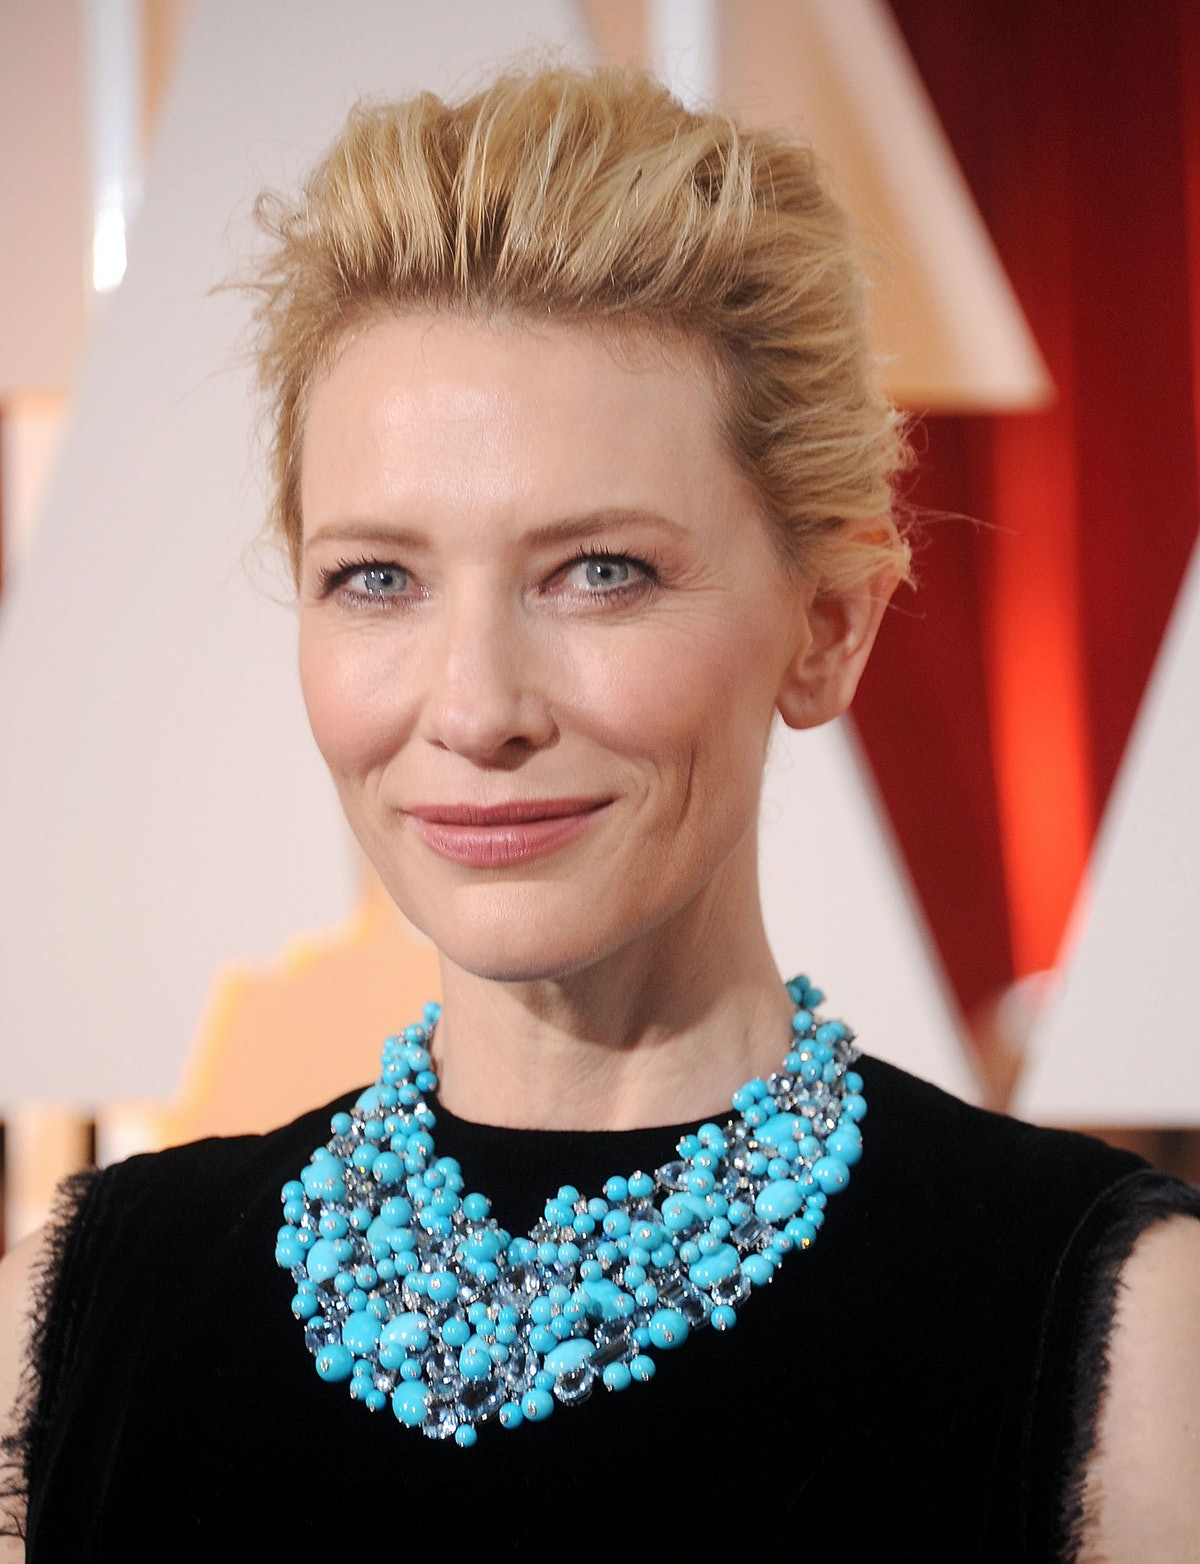 Cate Blanchett in a Tiffany & Co. necklace